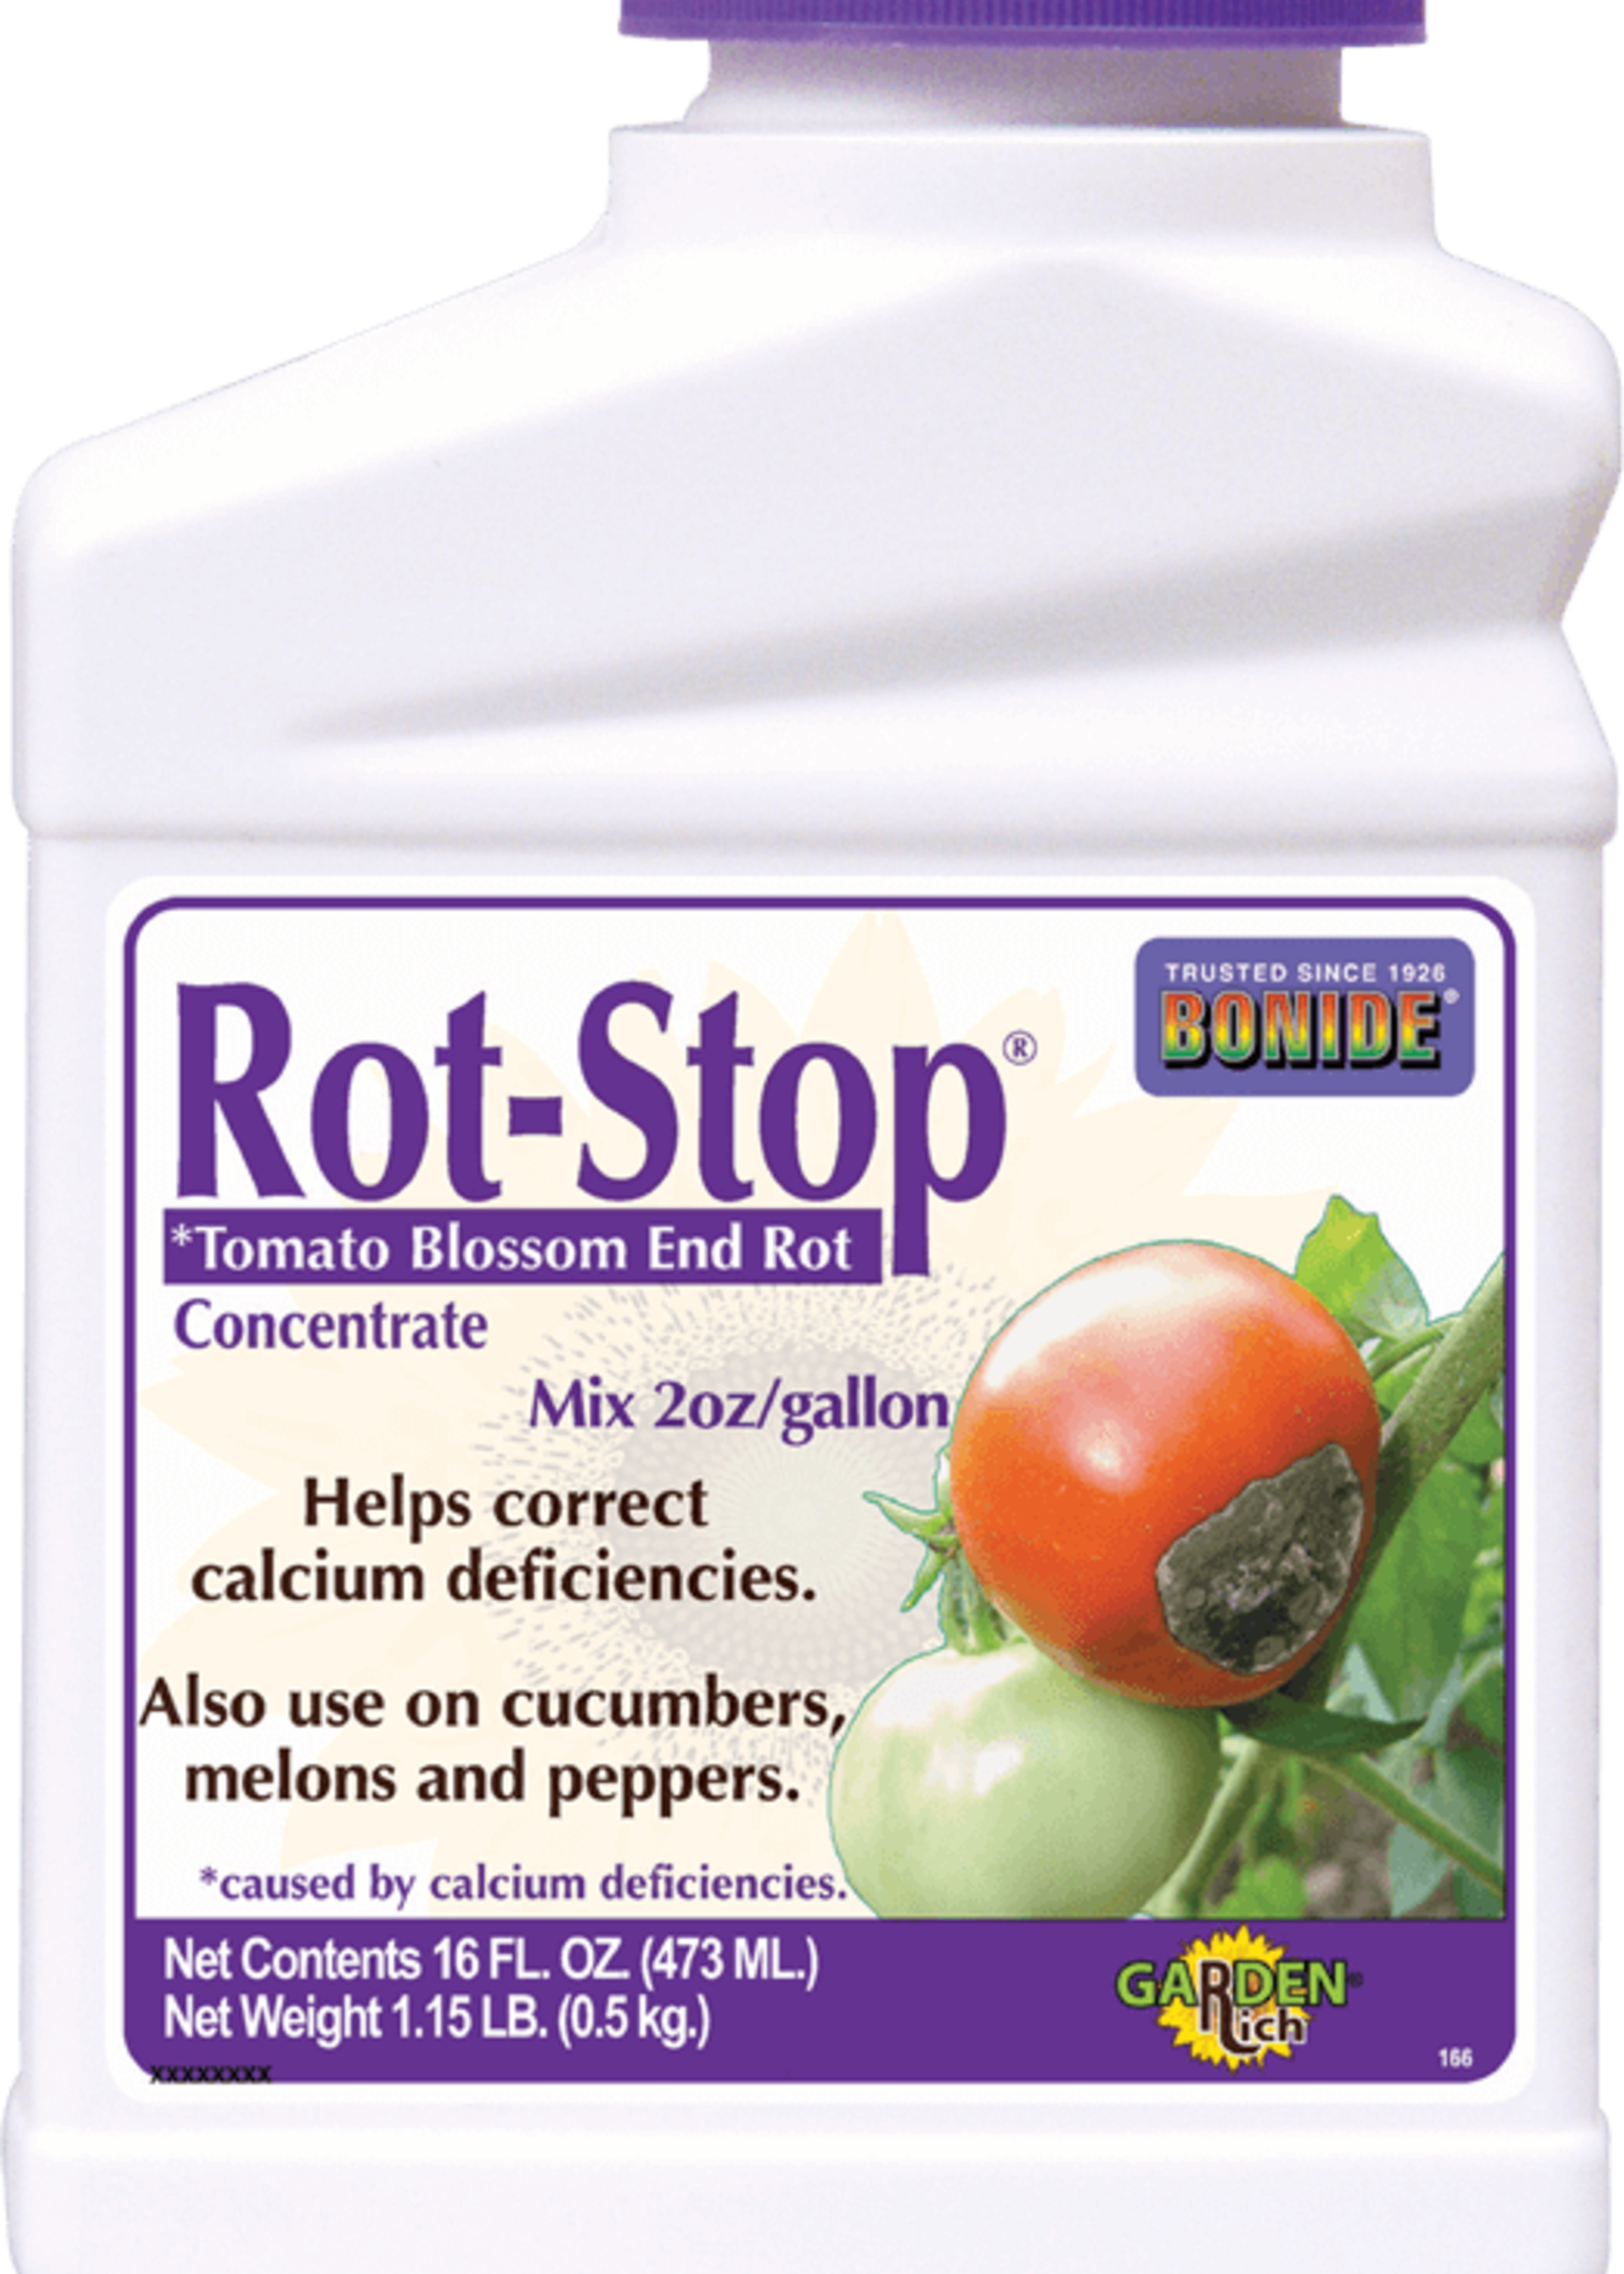 Bonide Rot-Stop concentrate 16 oz.